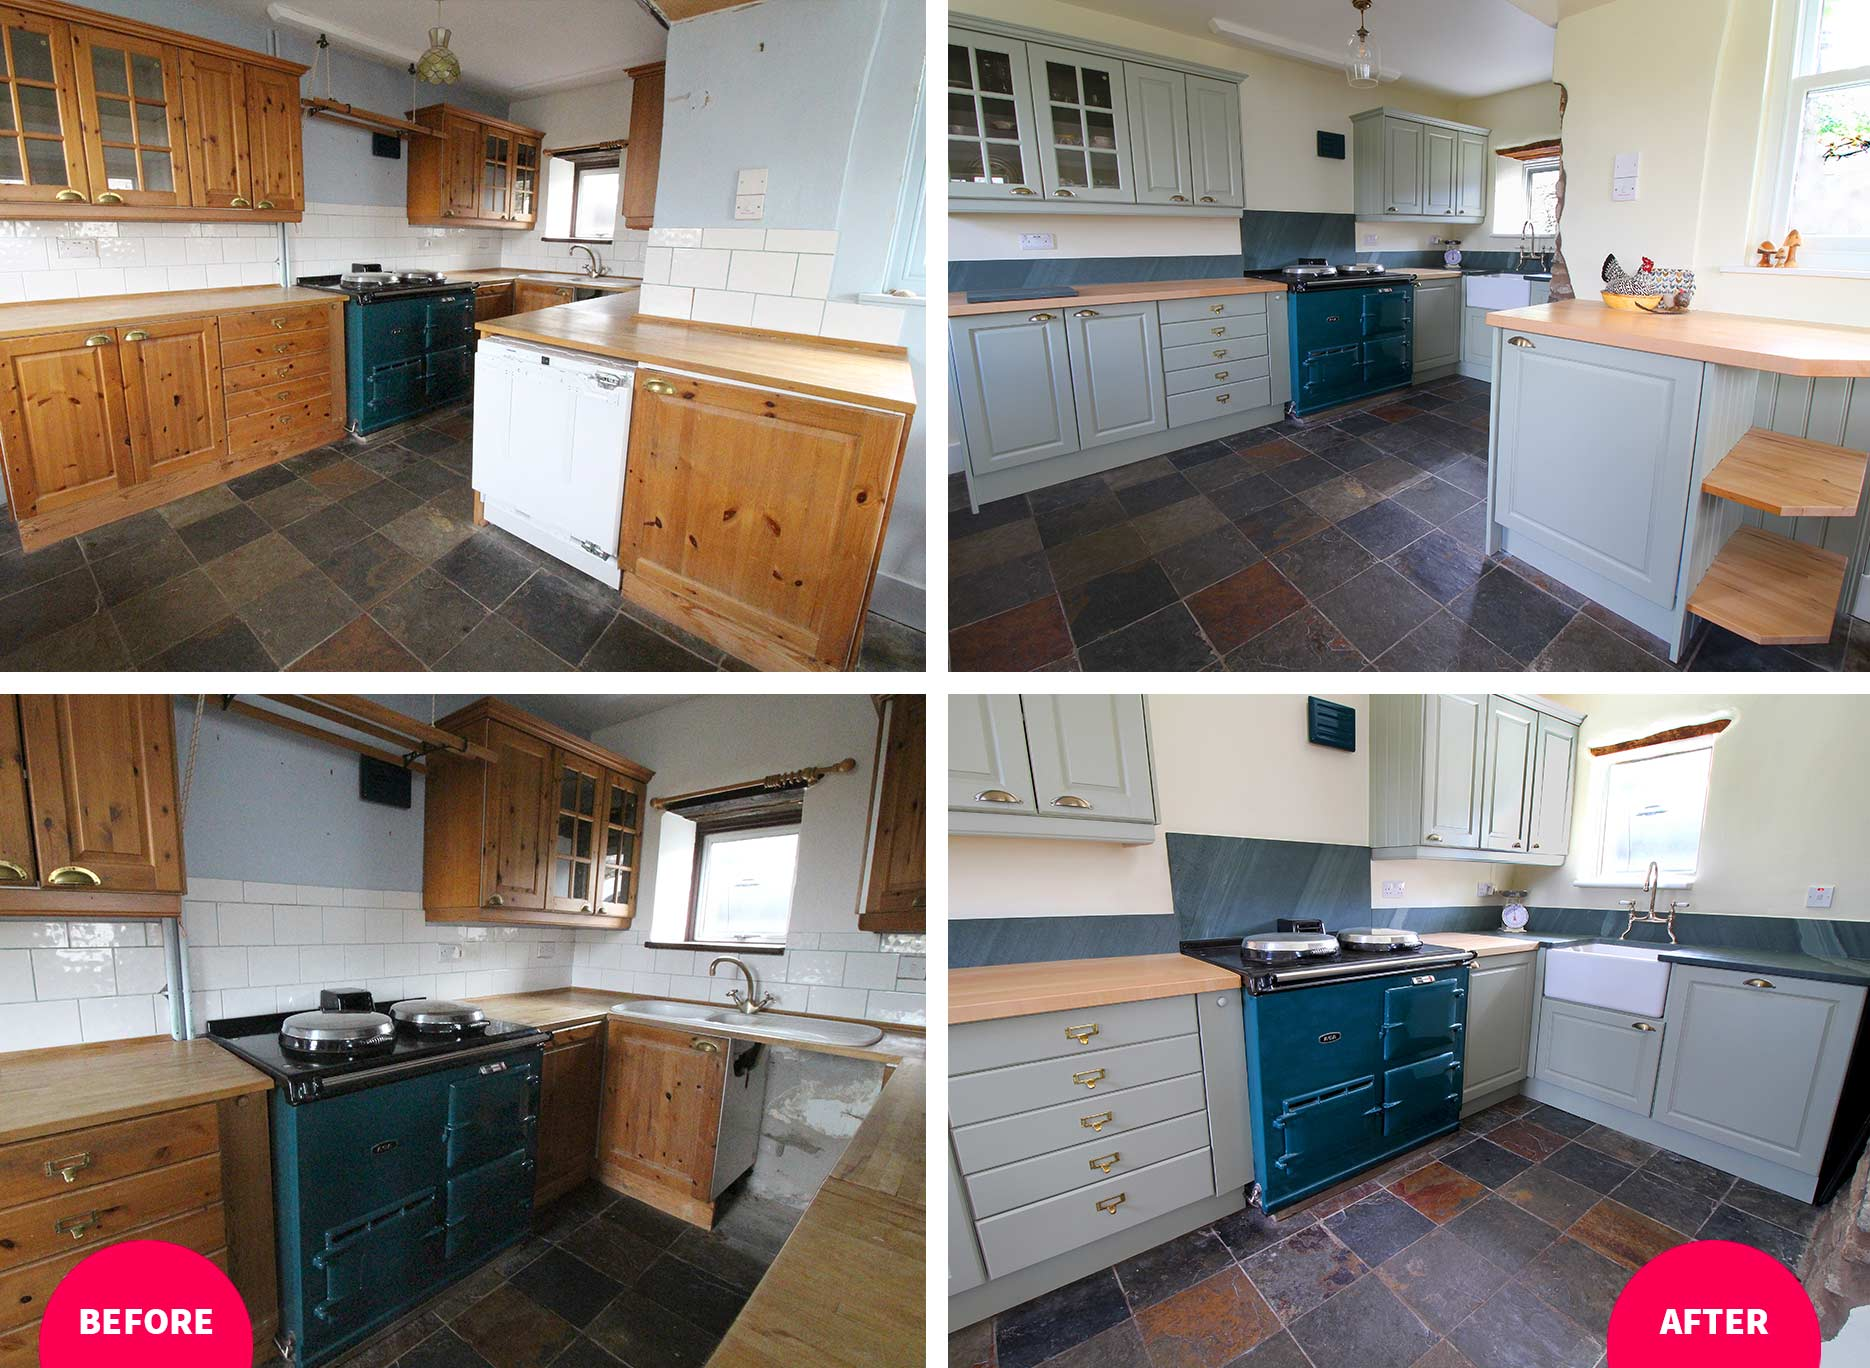 Before After The Complete Kitchen Renovation Co,How Much To Give For A Wedding Gift Cash